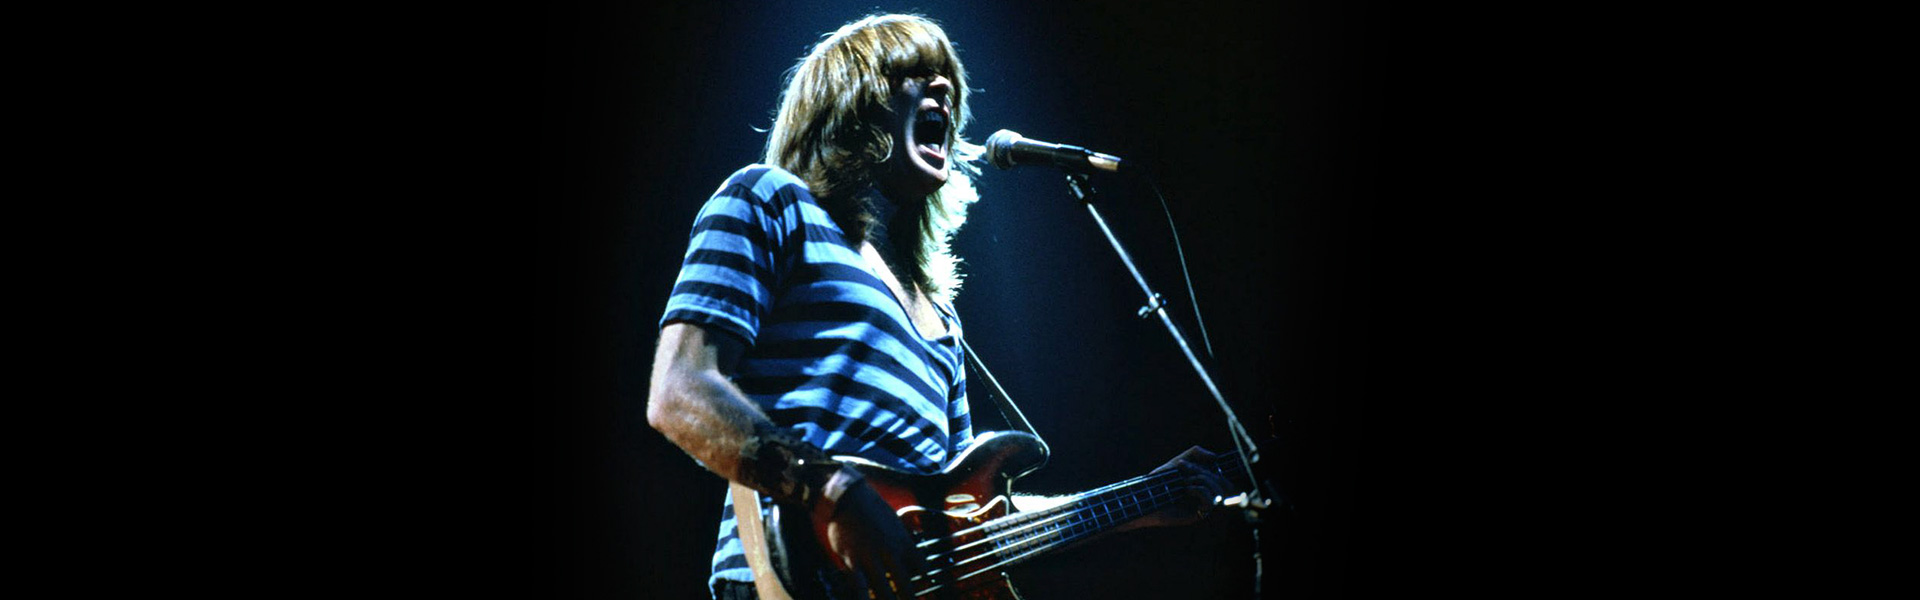 cliff_williams-acdc